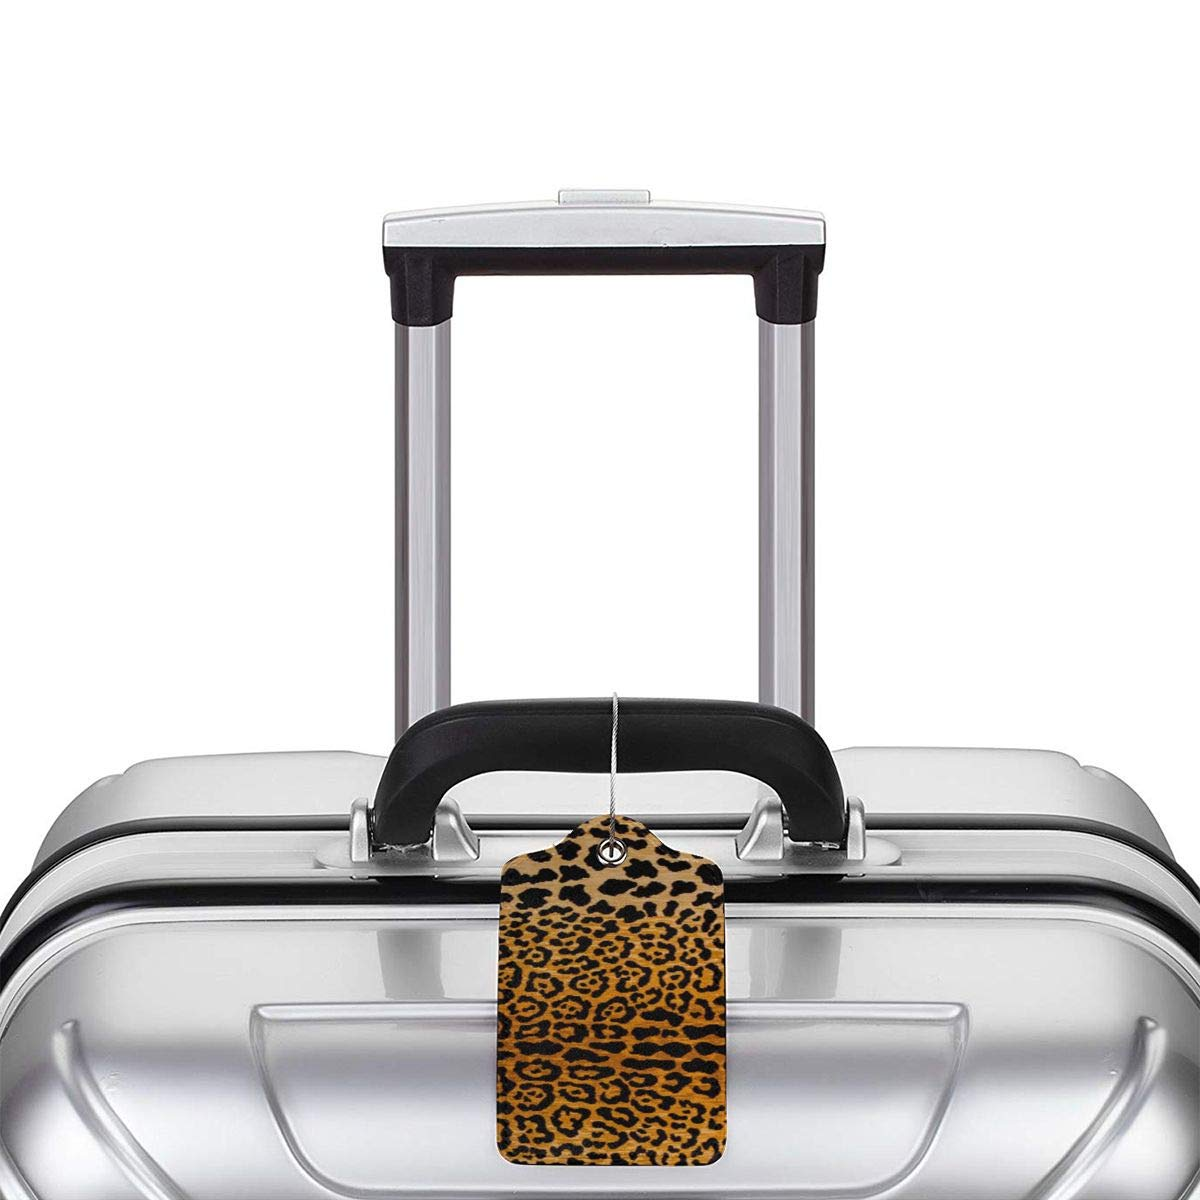 Leopard Print Travel Luggage Tags With Full Privacy Cover Leather Case And Stainless Steel Loop